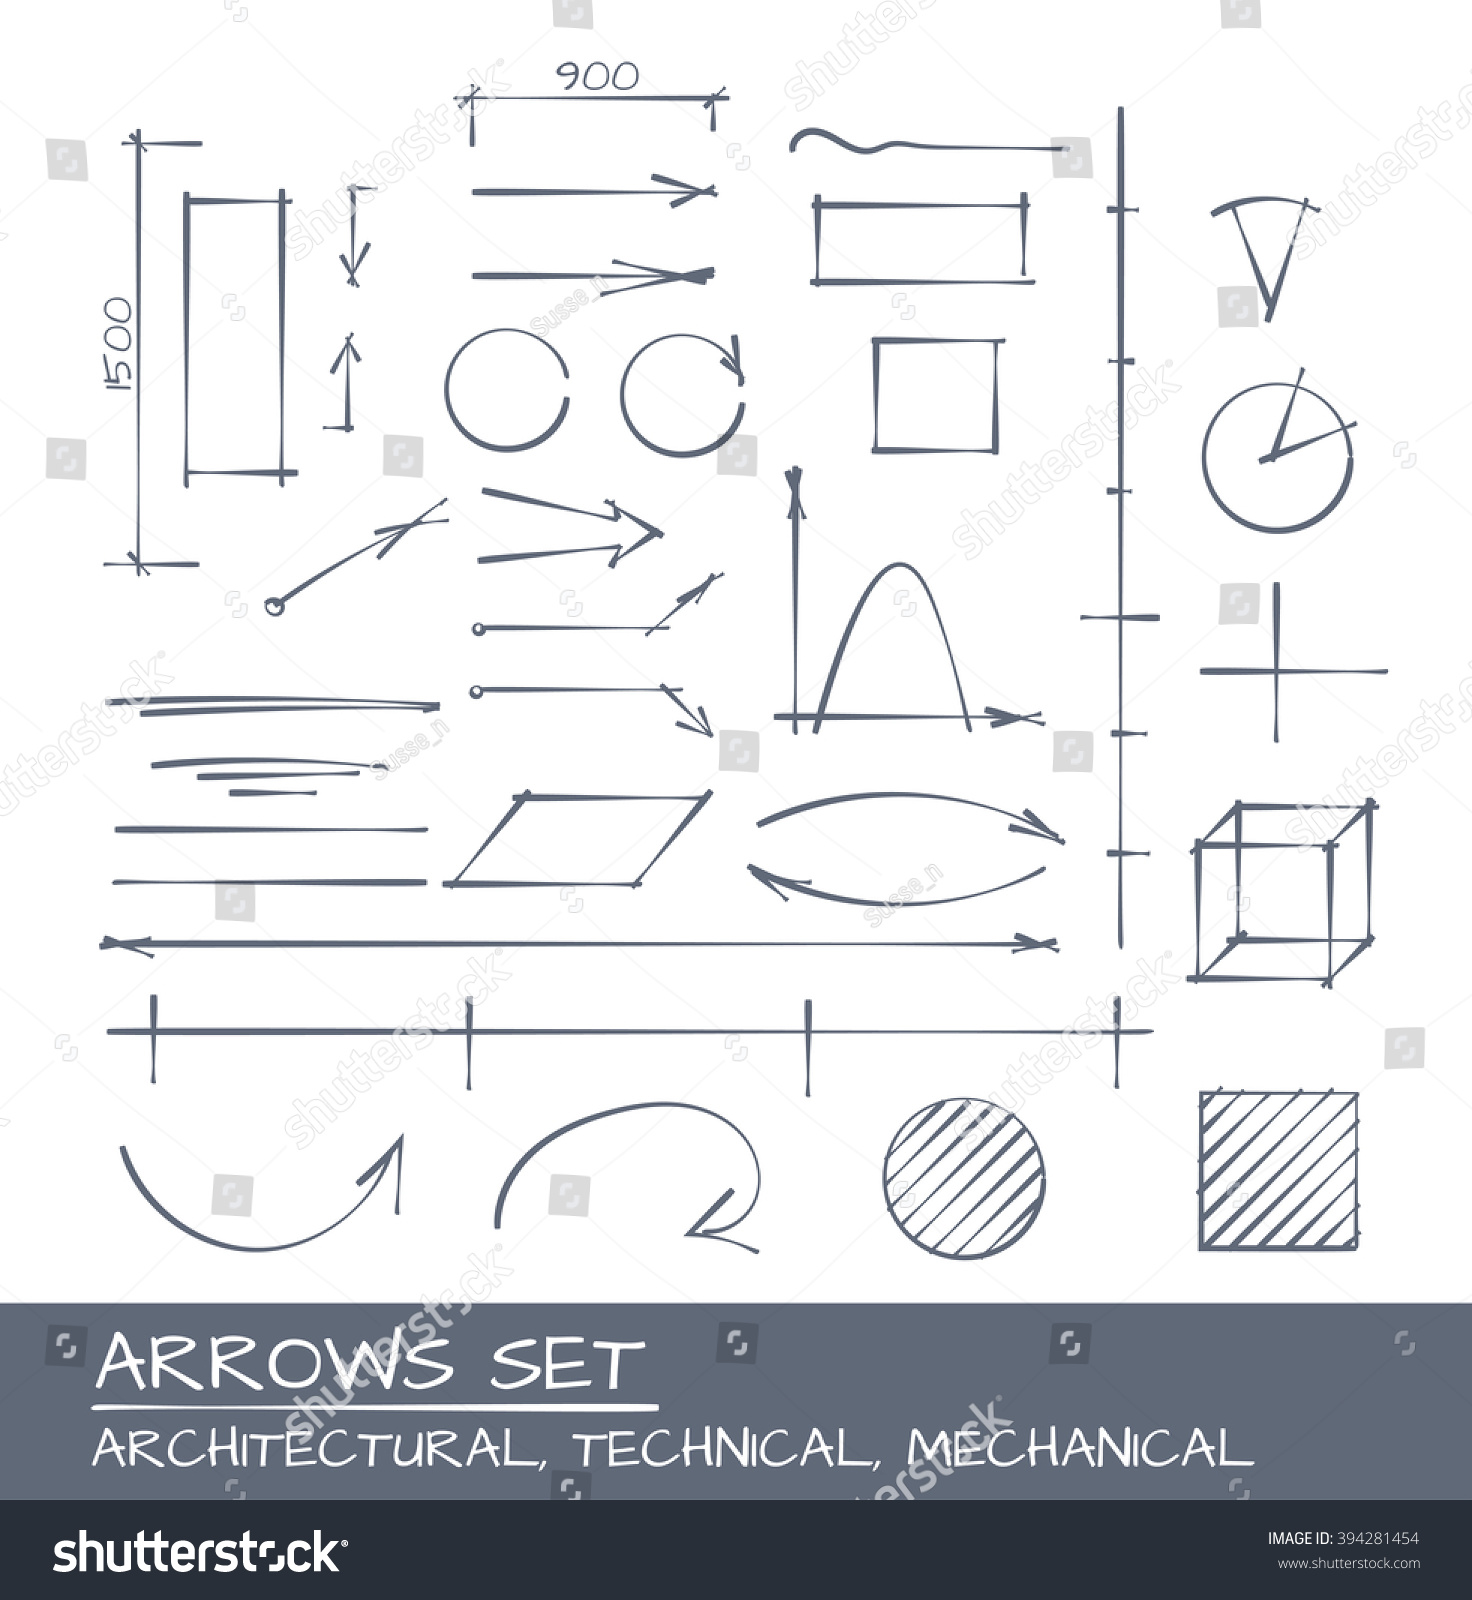 Architectural Technical and Engineering Arrows Hand Drawn Set